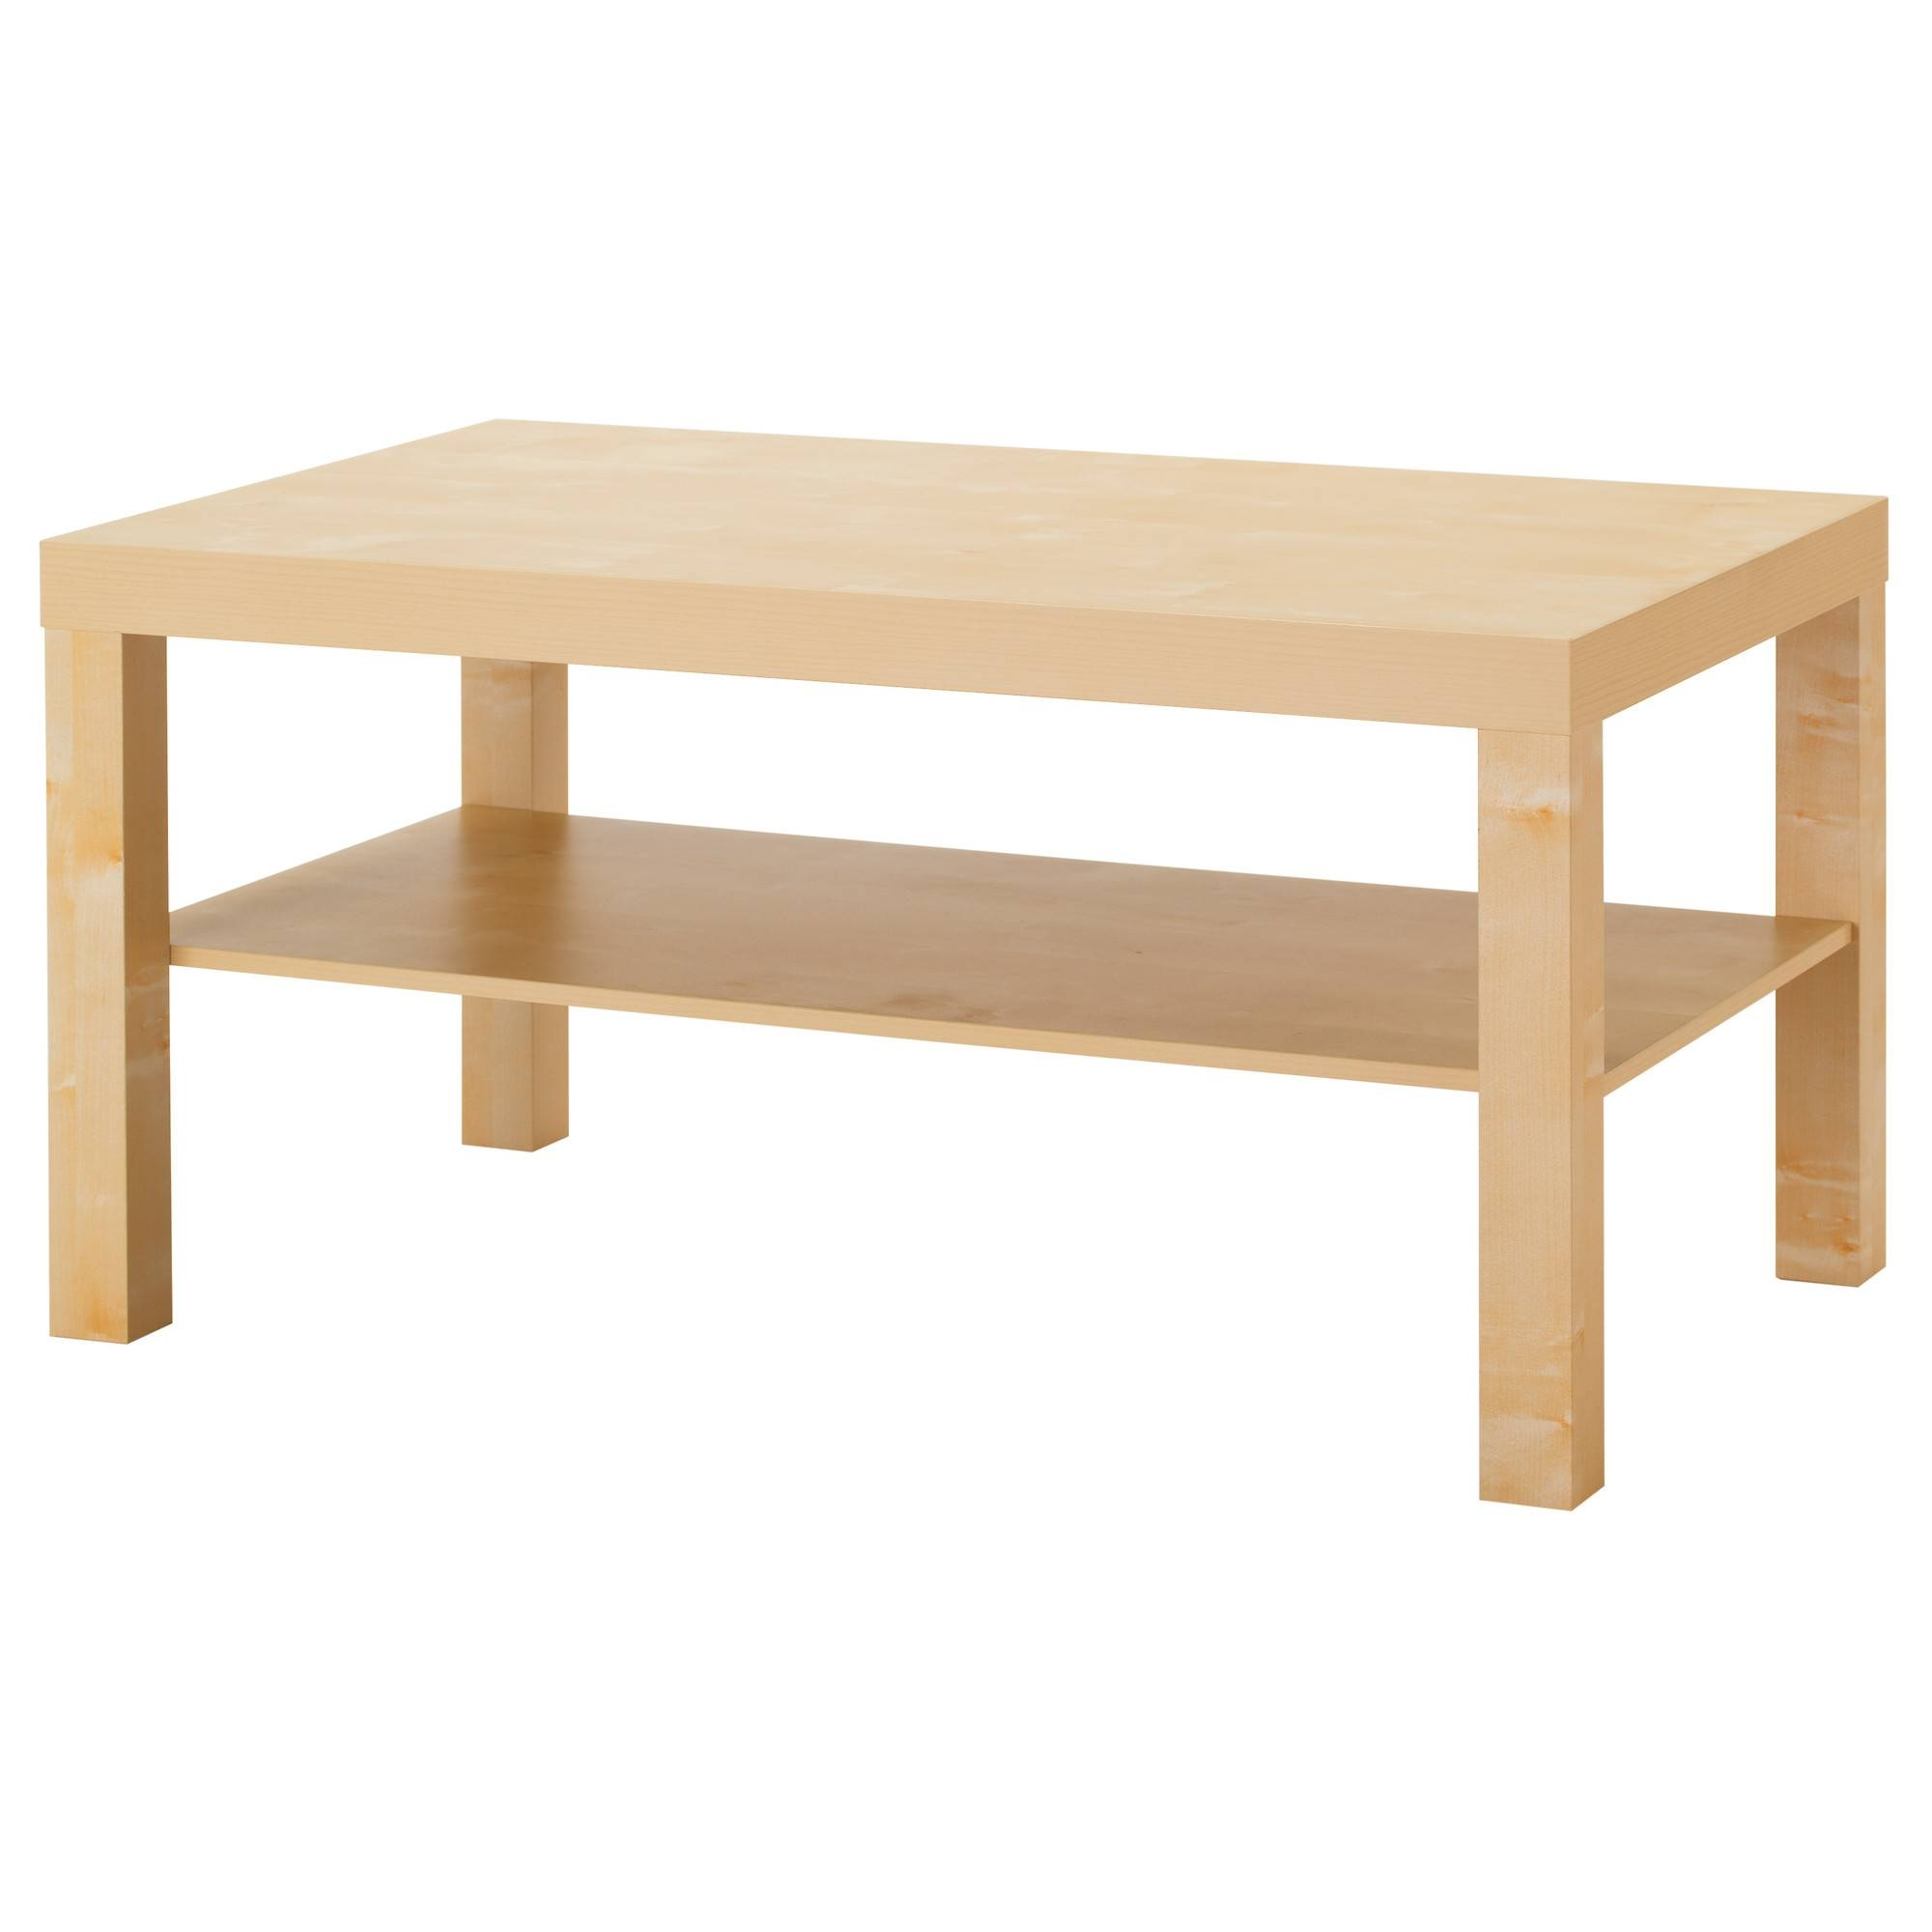 "Lack Coffee Table - Birch Effect, 35 3/8X21 5/8 "" - Ikea within Birch Coffee Tables (Image 17 of 30)"